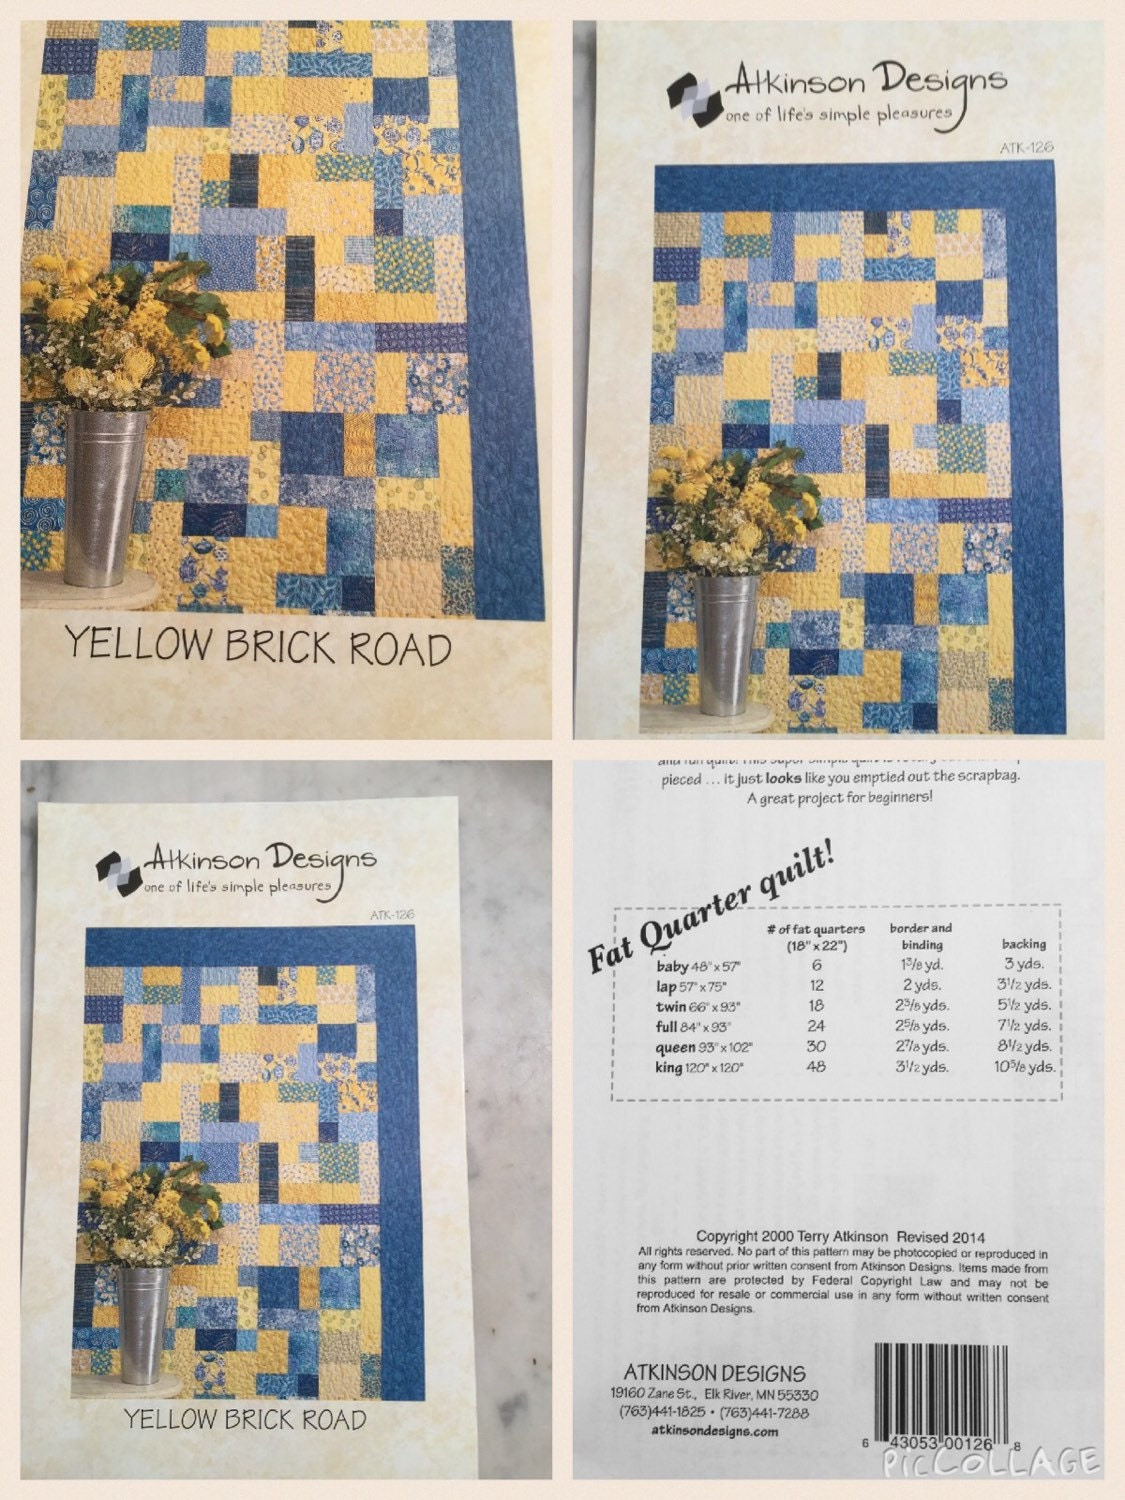 Free Quilt Pattern For Yellow Brick Road : Yellow Brick Road quilt pattern by Atkinson Designs from SewWille on Etsy Studio